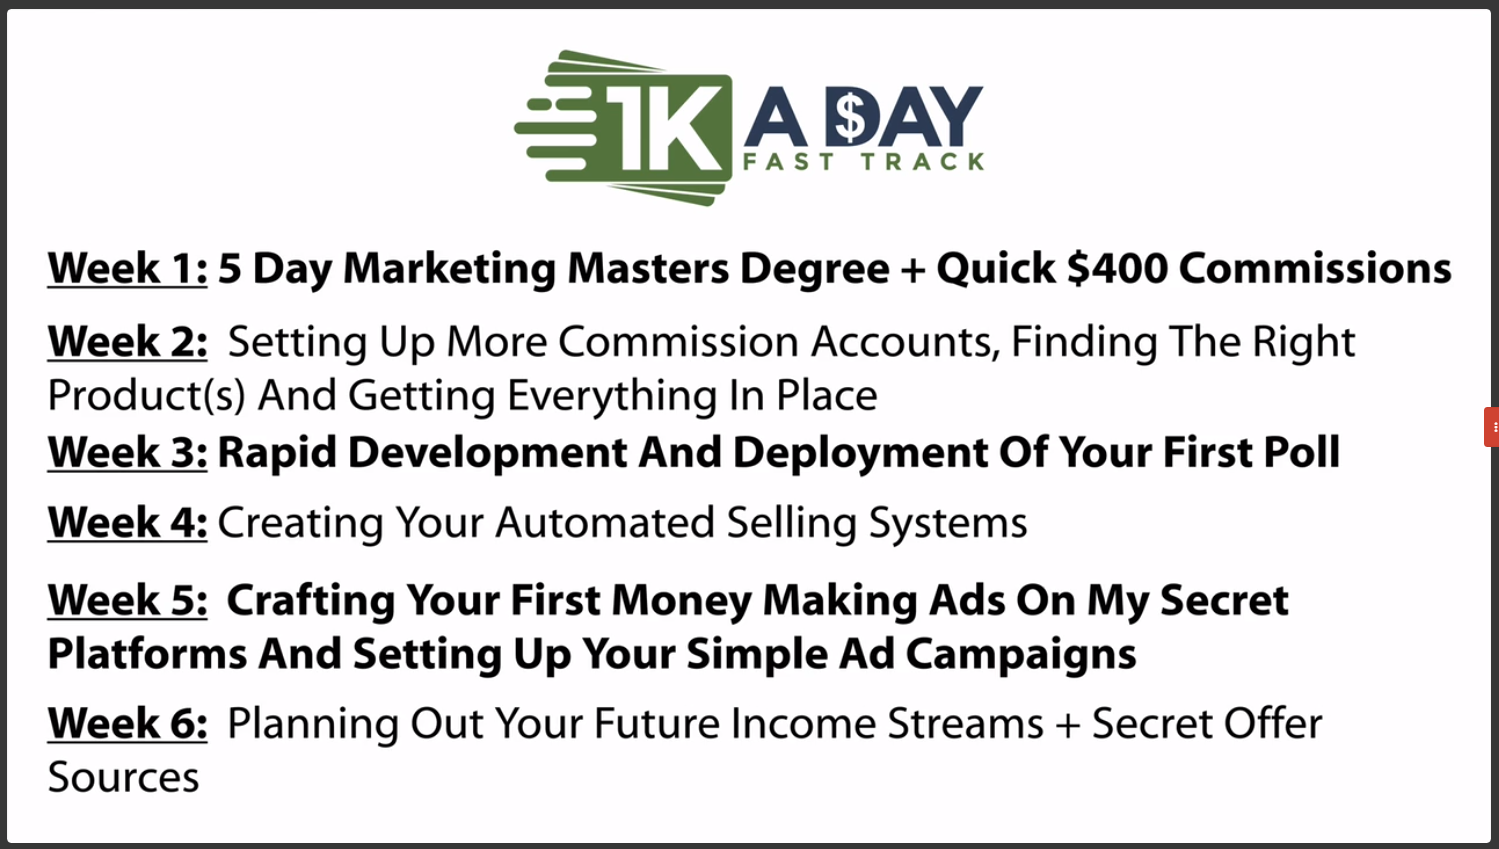 1k A Day Fast Track Training Program  In Stock